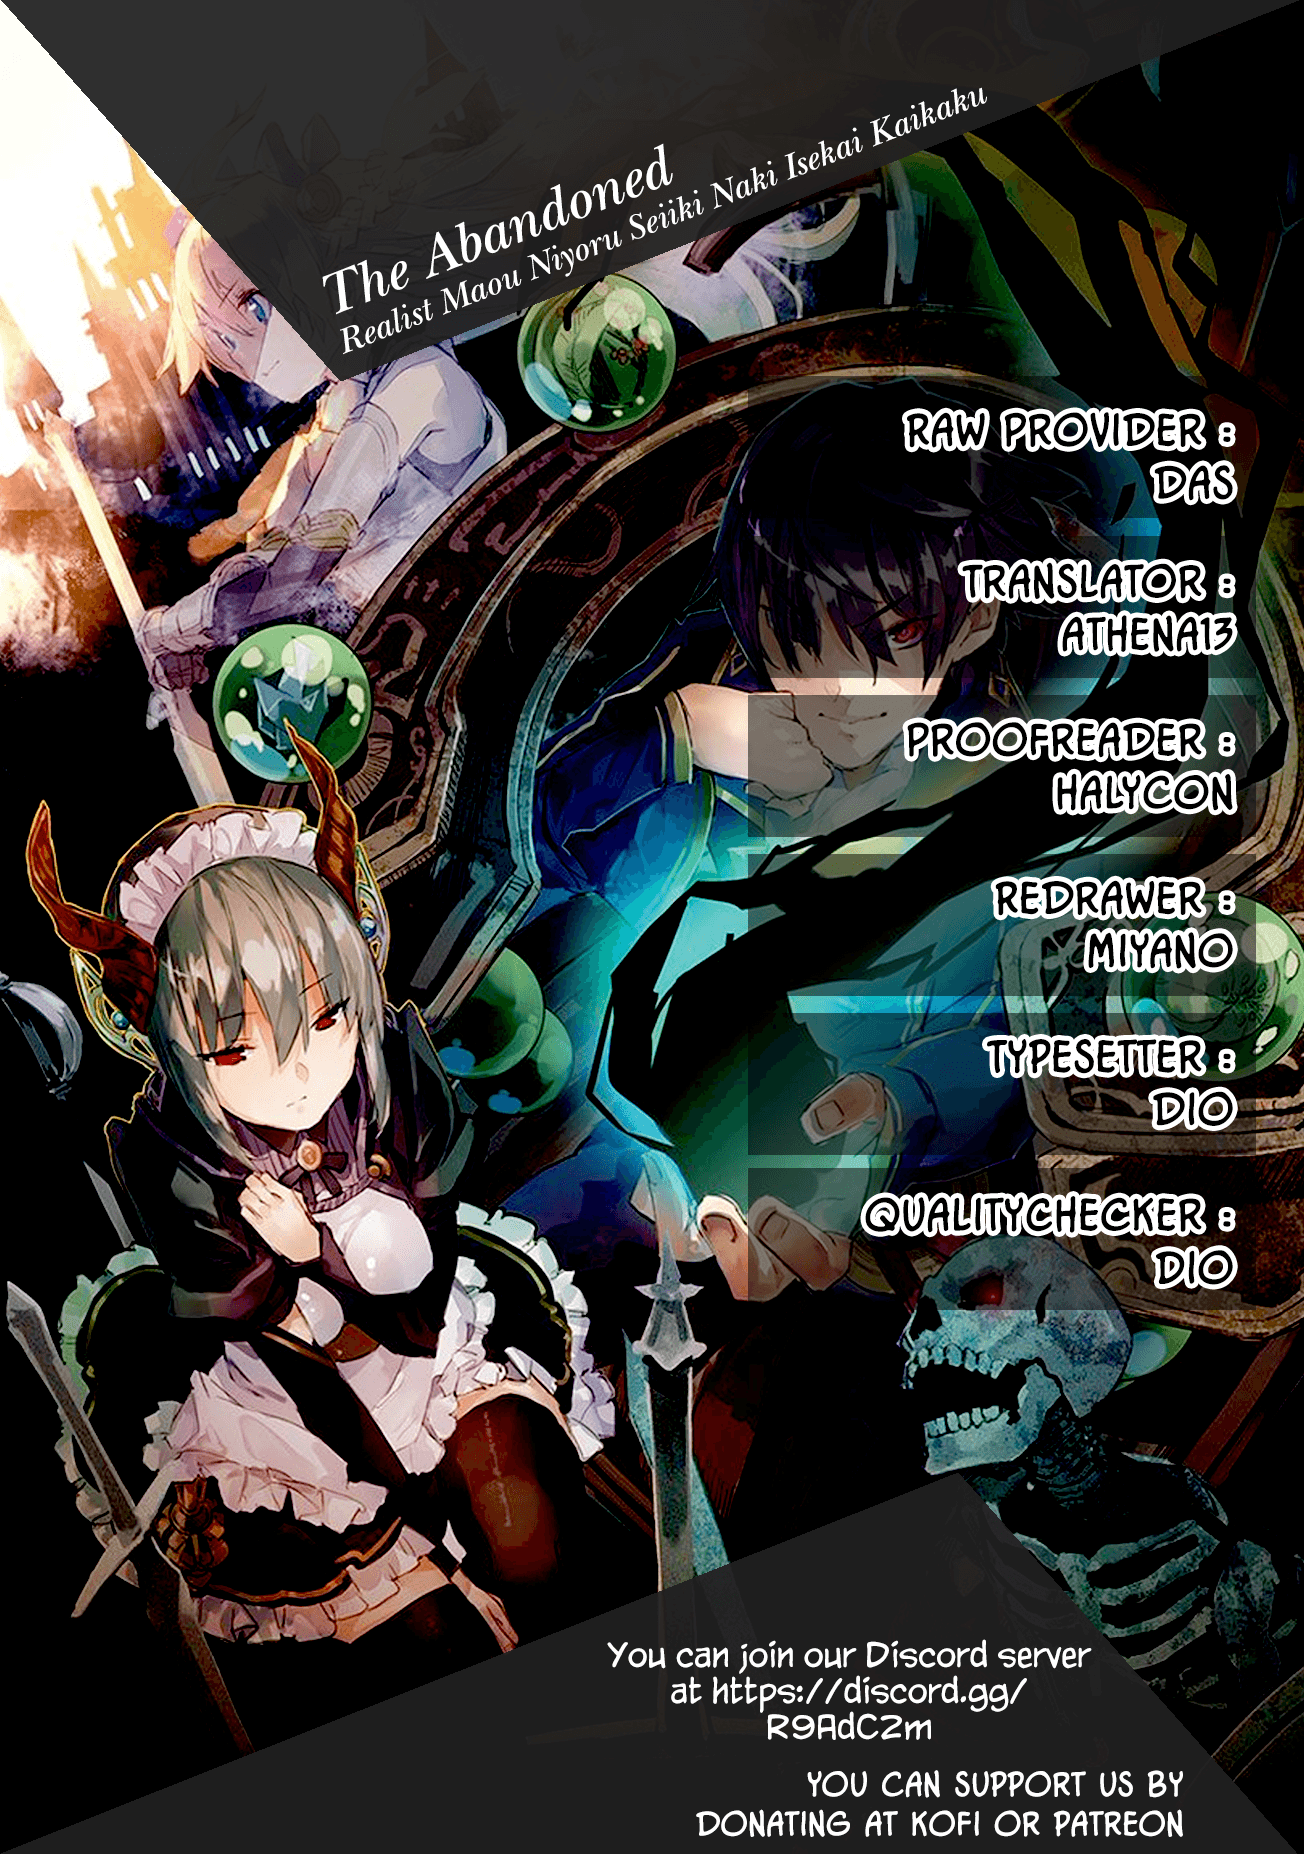 Manga The Legendary Rebuilding of a World by a Realist Demon King - Chapter 13 Page 1